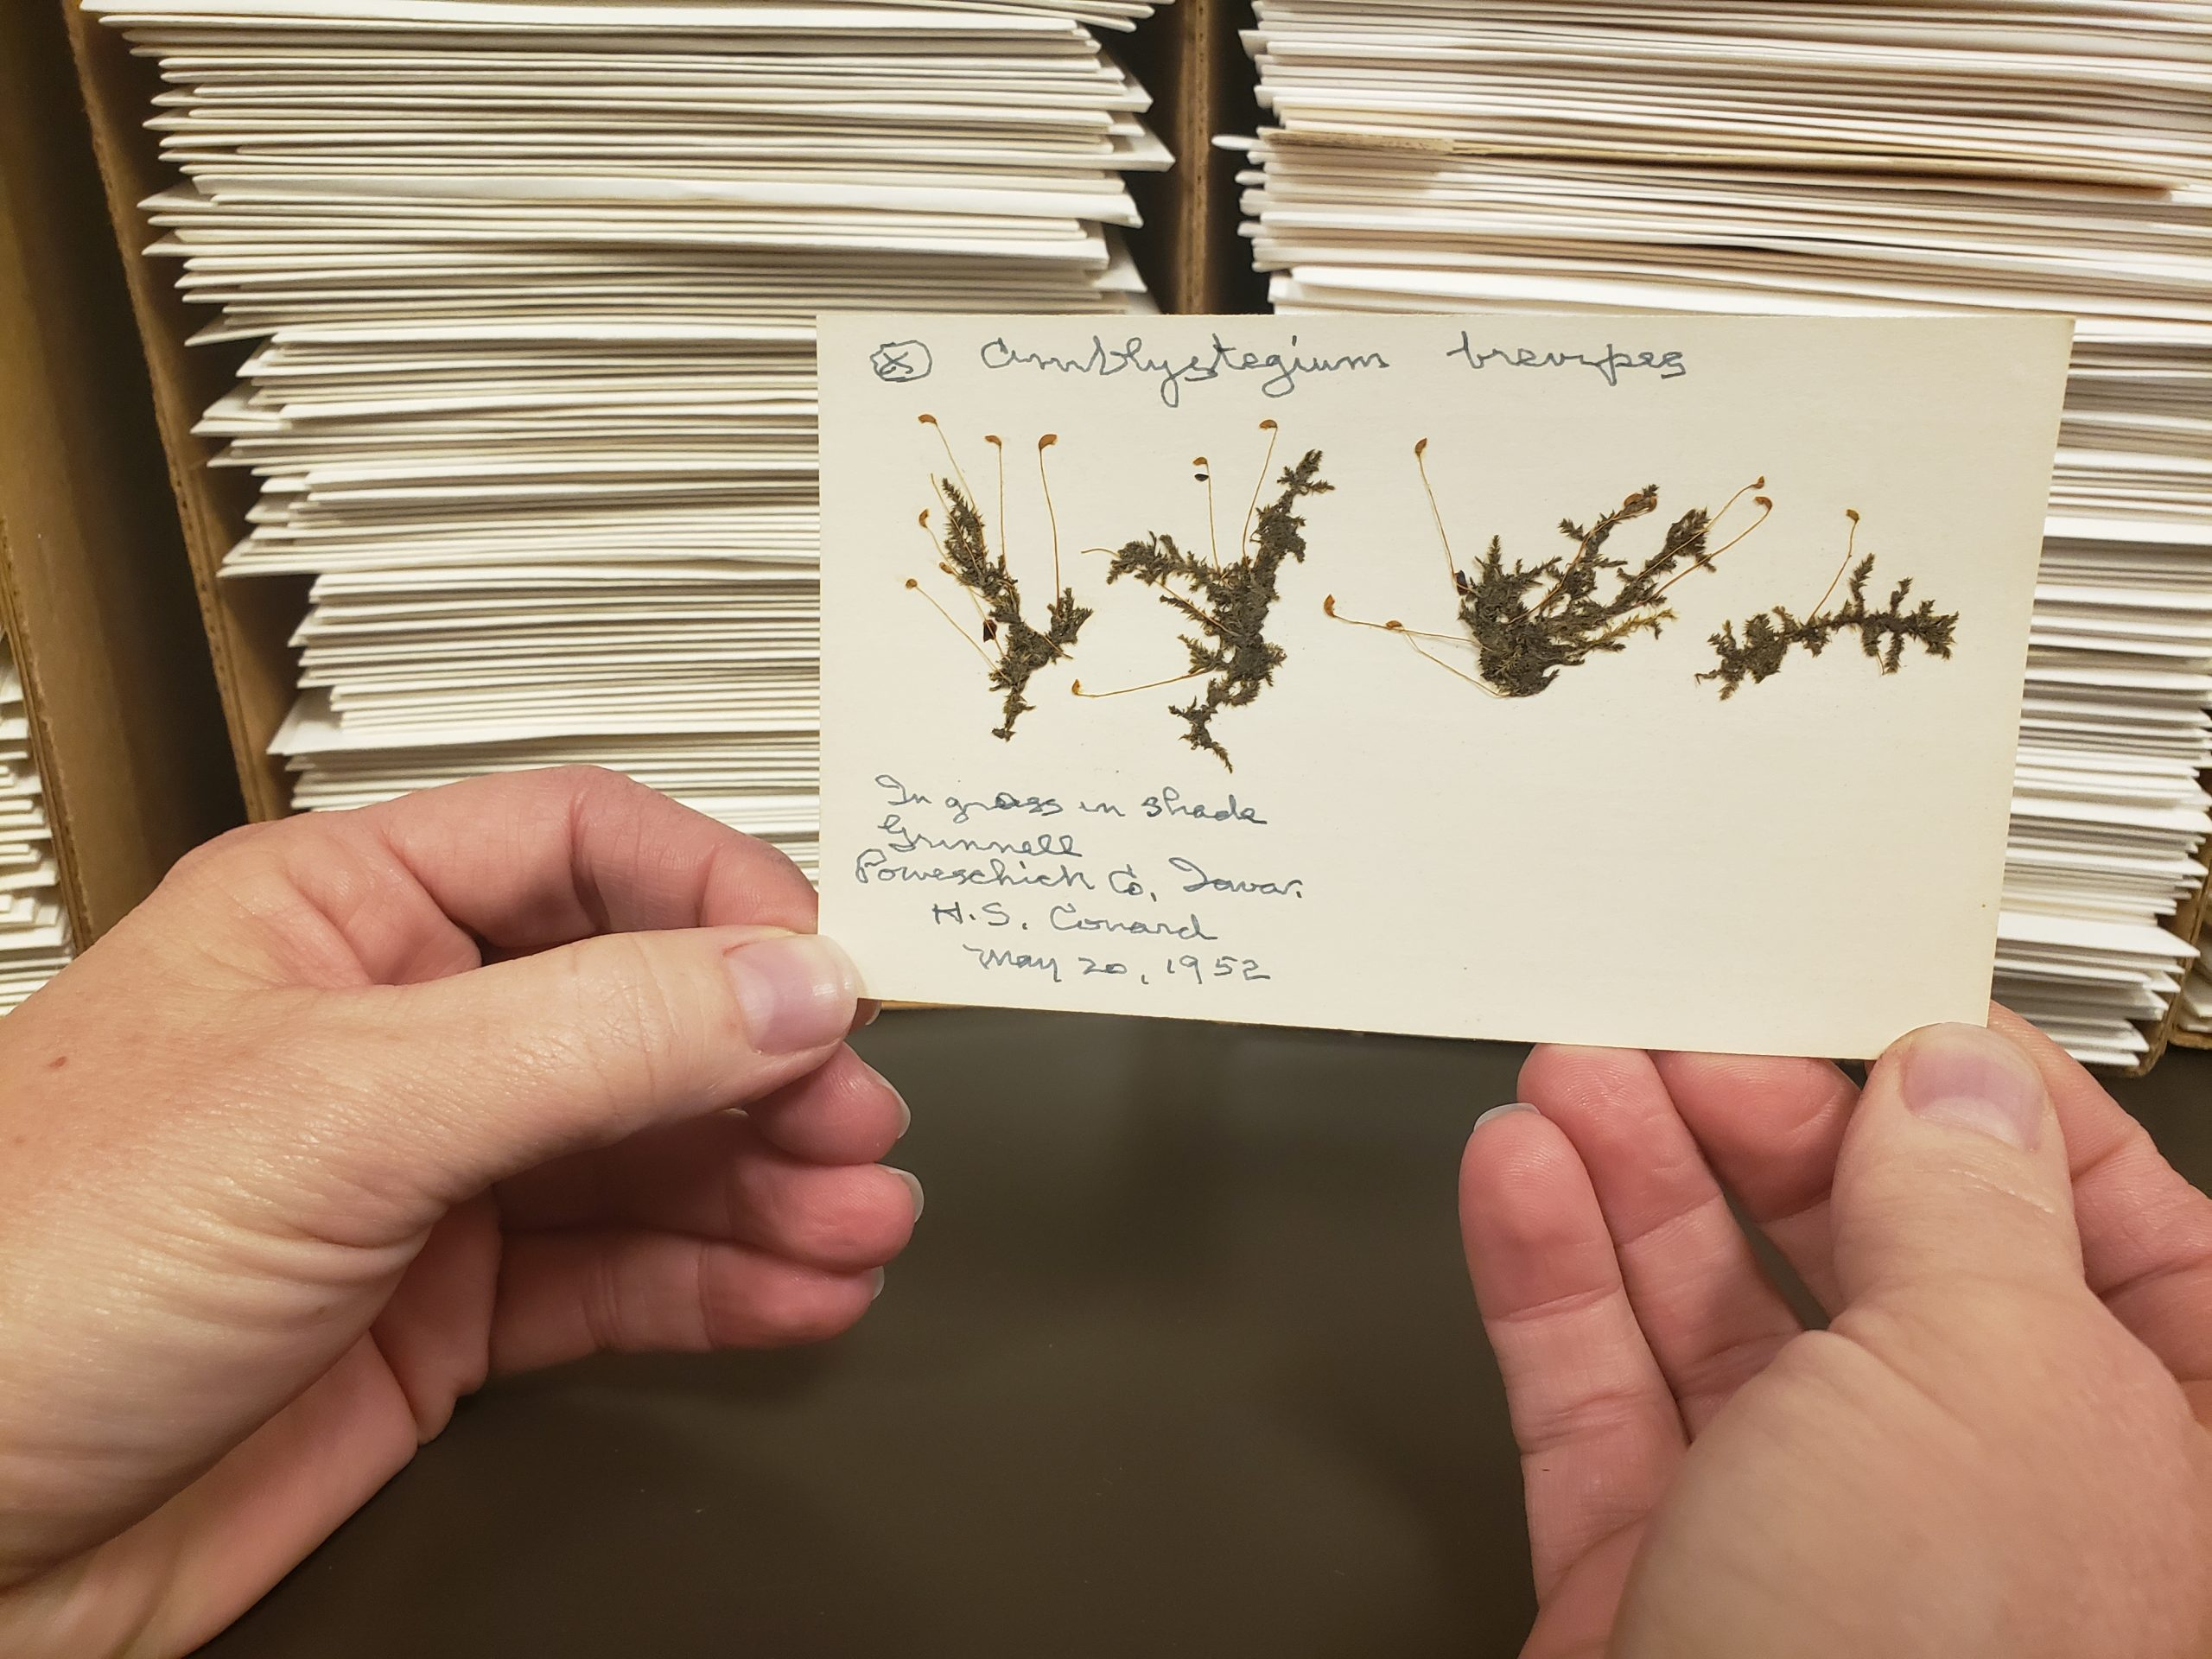 The majority of the bryophyte collection at BRIT was collected between 1934 and 1980.